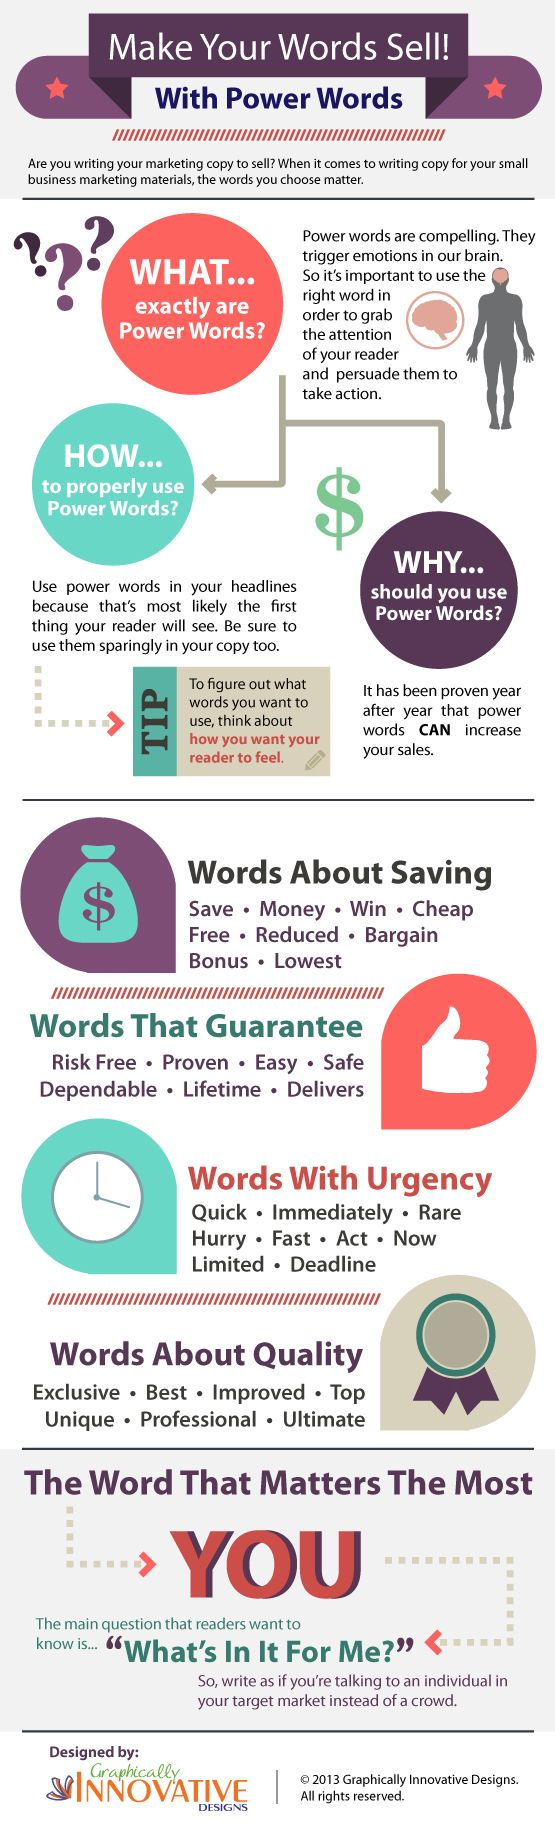 33 Power Words That Will Convert More Website Visitors Into Customers